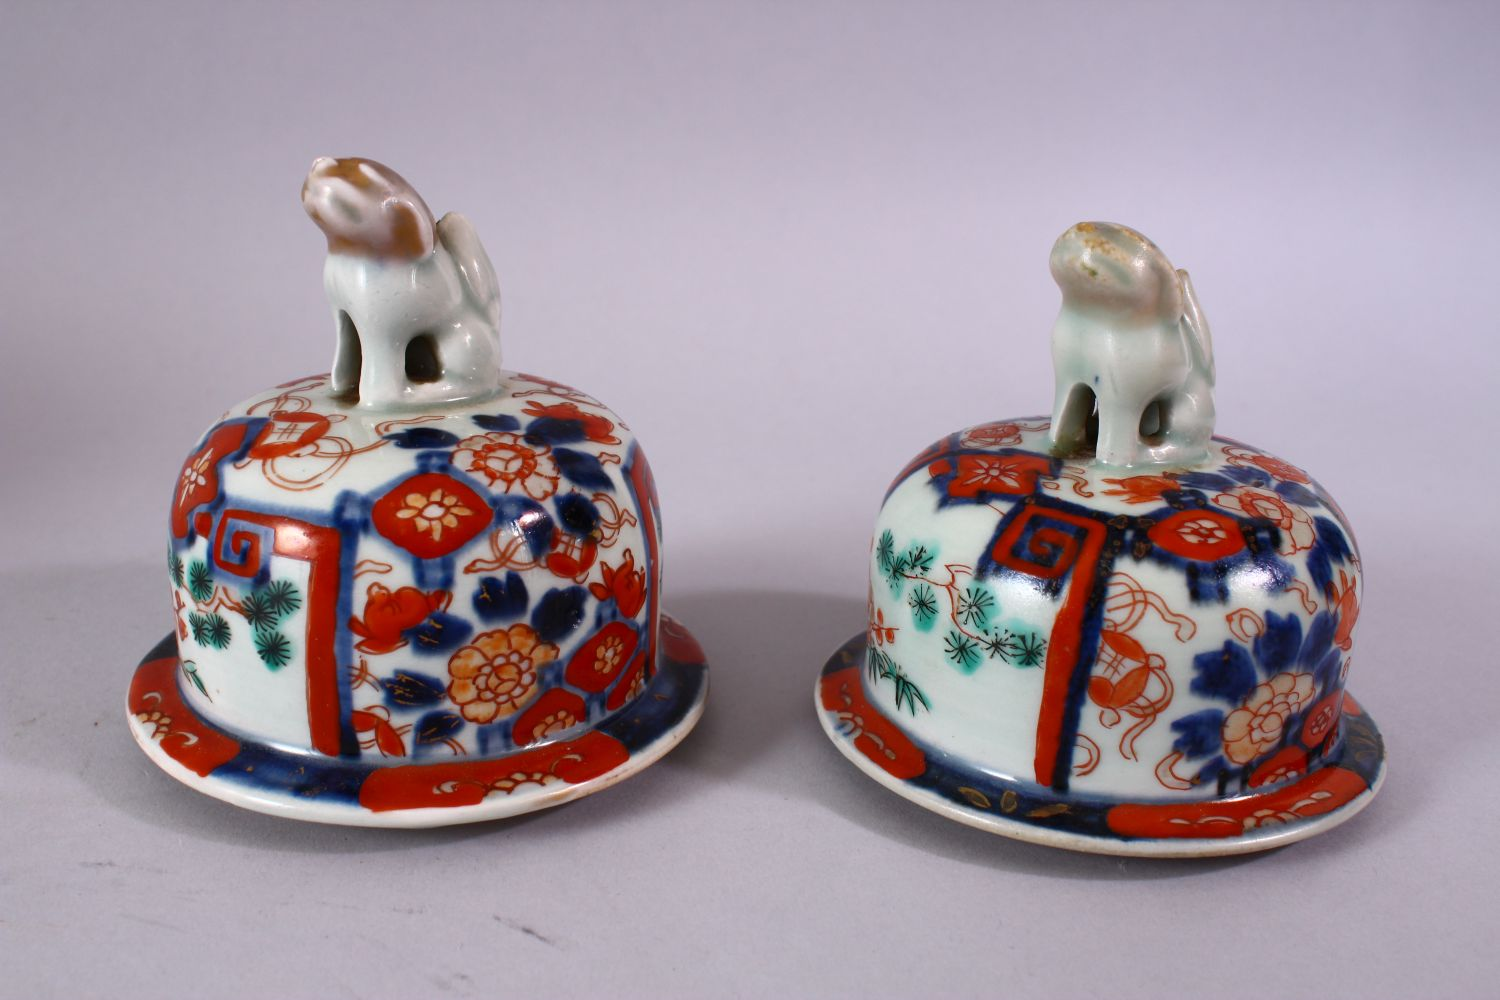 A PAIR OF MEIJI PERIOD IMARI VASES AND COVERS, with kylin finials, overall 30cm high. - Image 9 of 10